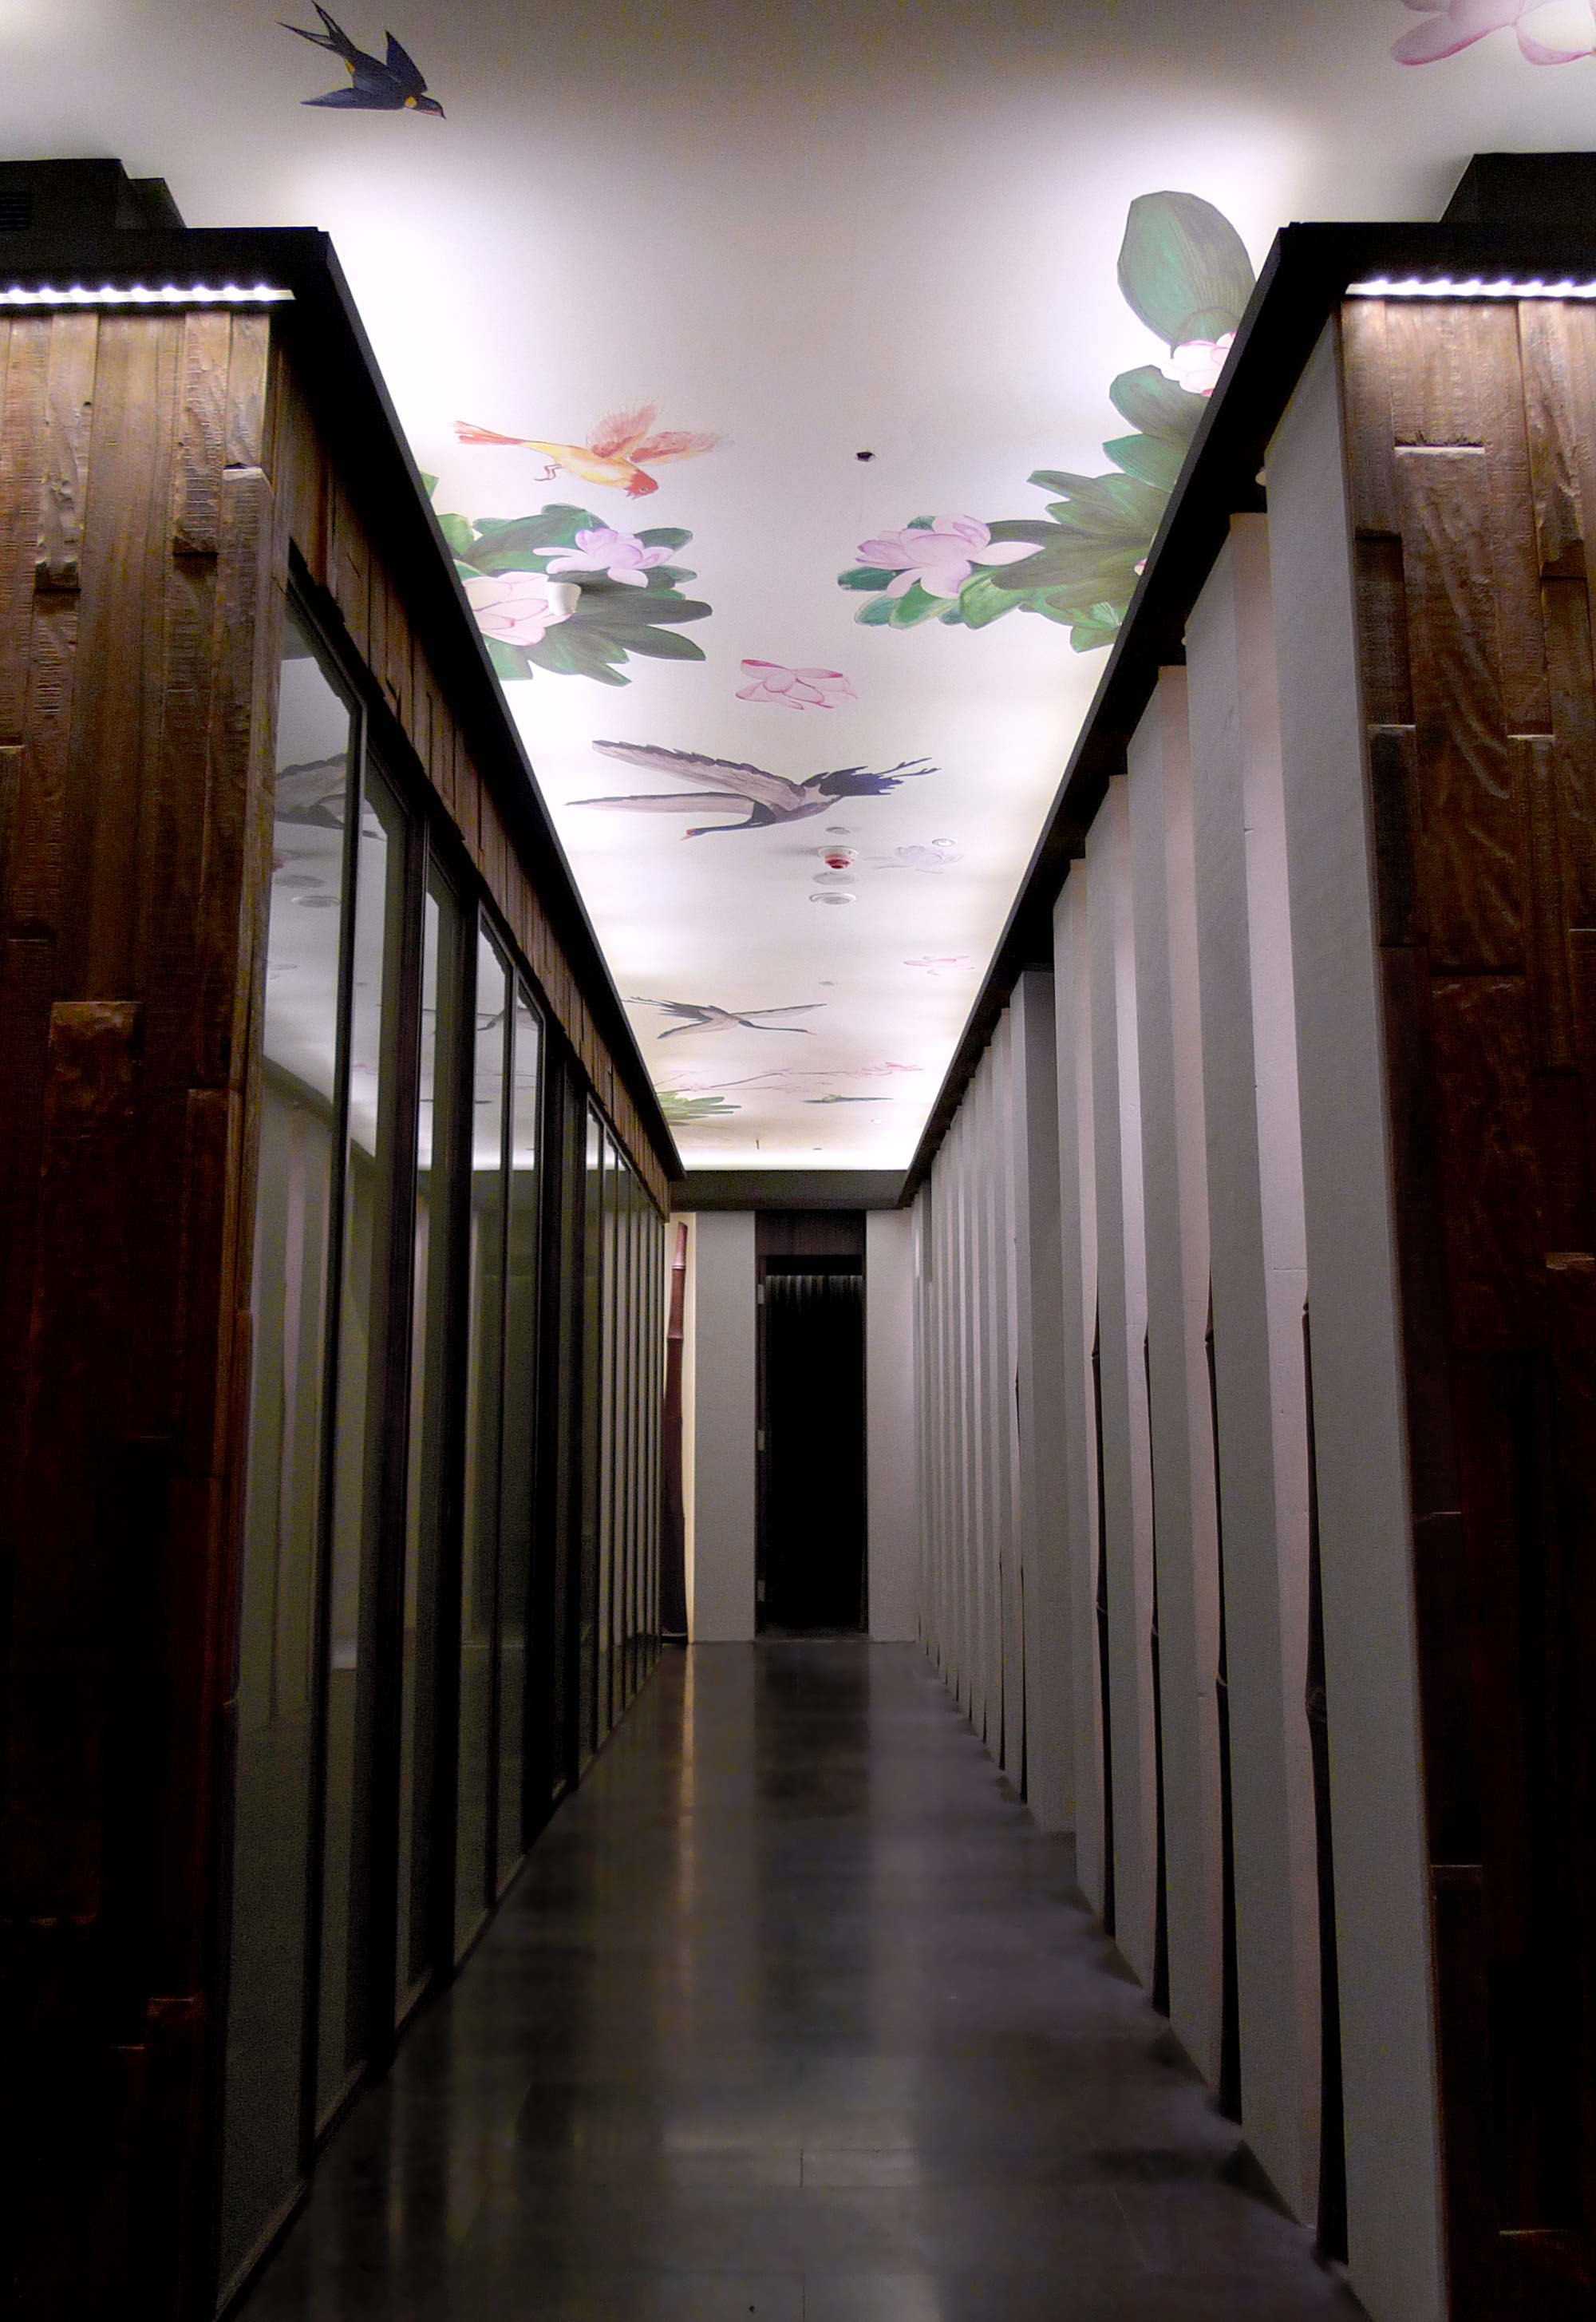 Elegant corridor at South Beauty Taipei Restaurant decorated by a China-inspired hand-painted artwork on the ceiling